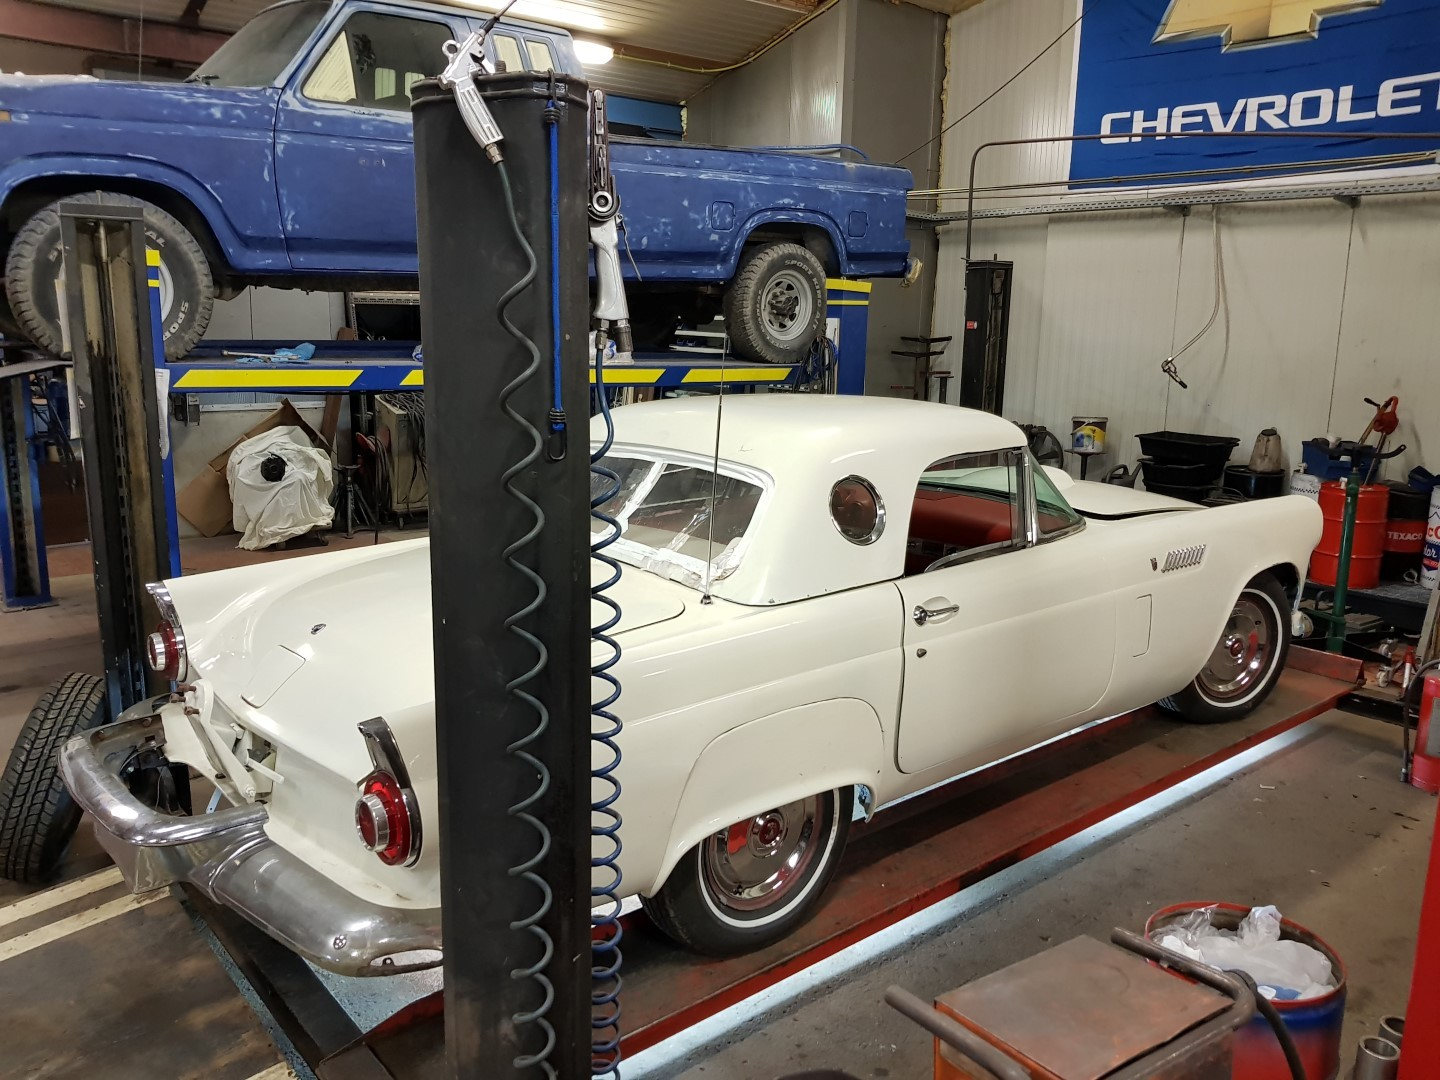 1956 Ford Thunderbird - 312ci V8 and automatic (11)